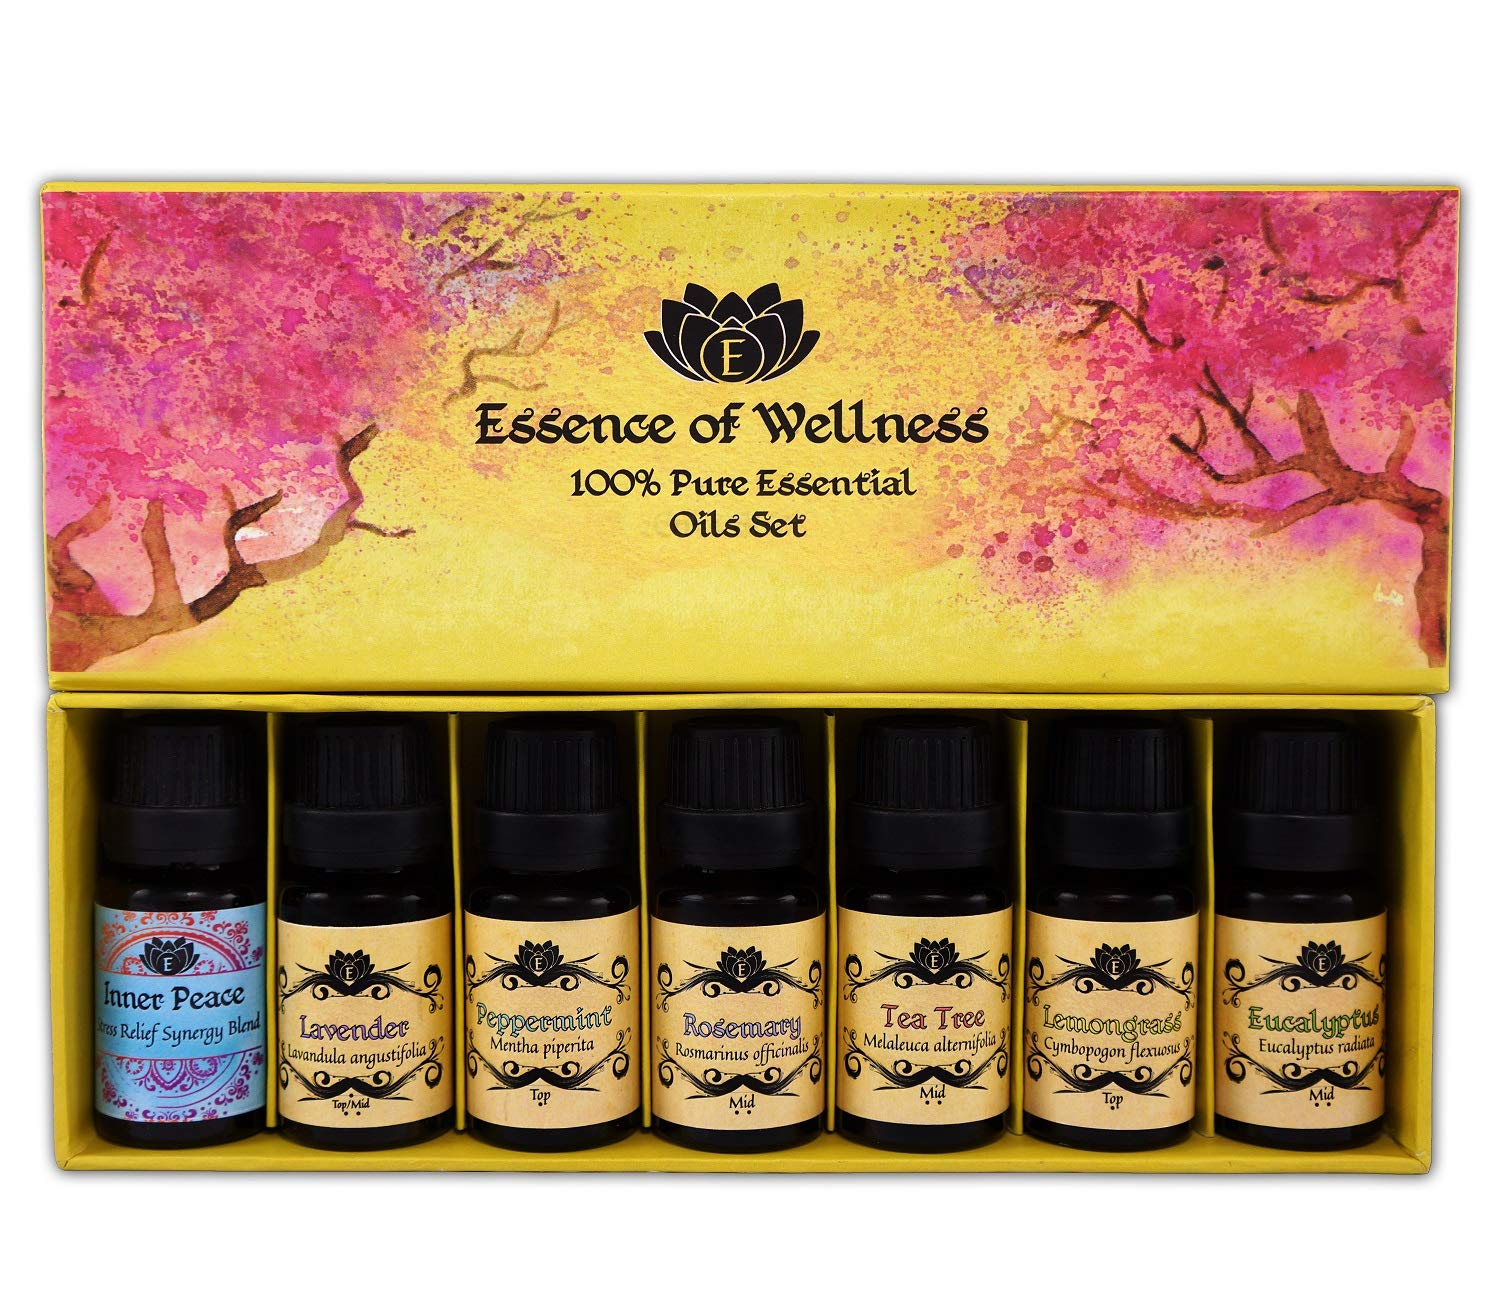 Wellness Specialized Essential Oils Gift Kit - Top 7 100% Pure Aromatherapy 10ml Starter Set - With BONUS Stress Relief Blend, Recipe eBook, Safe Dilution Chart Card, and Getting Started Guide